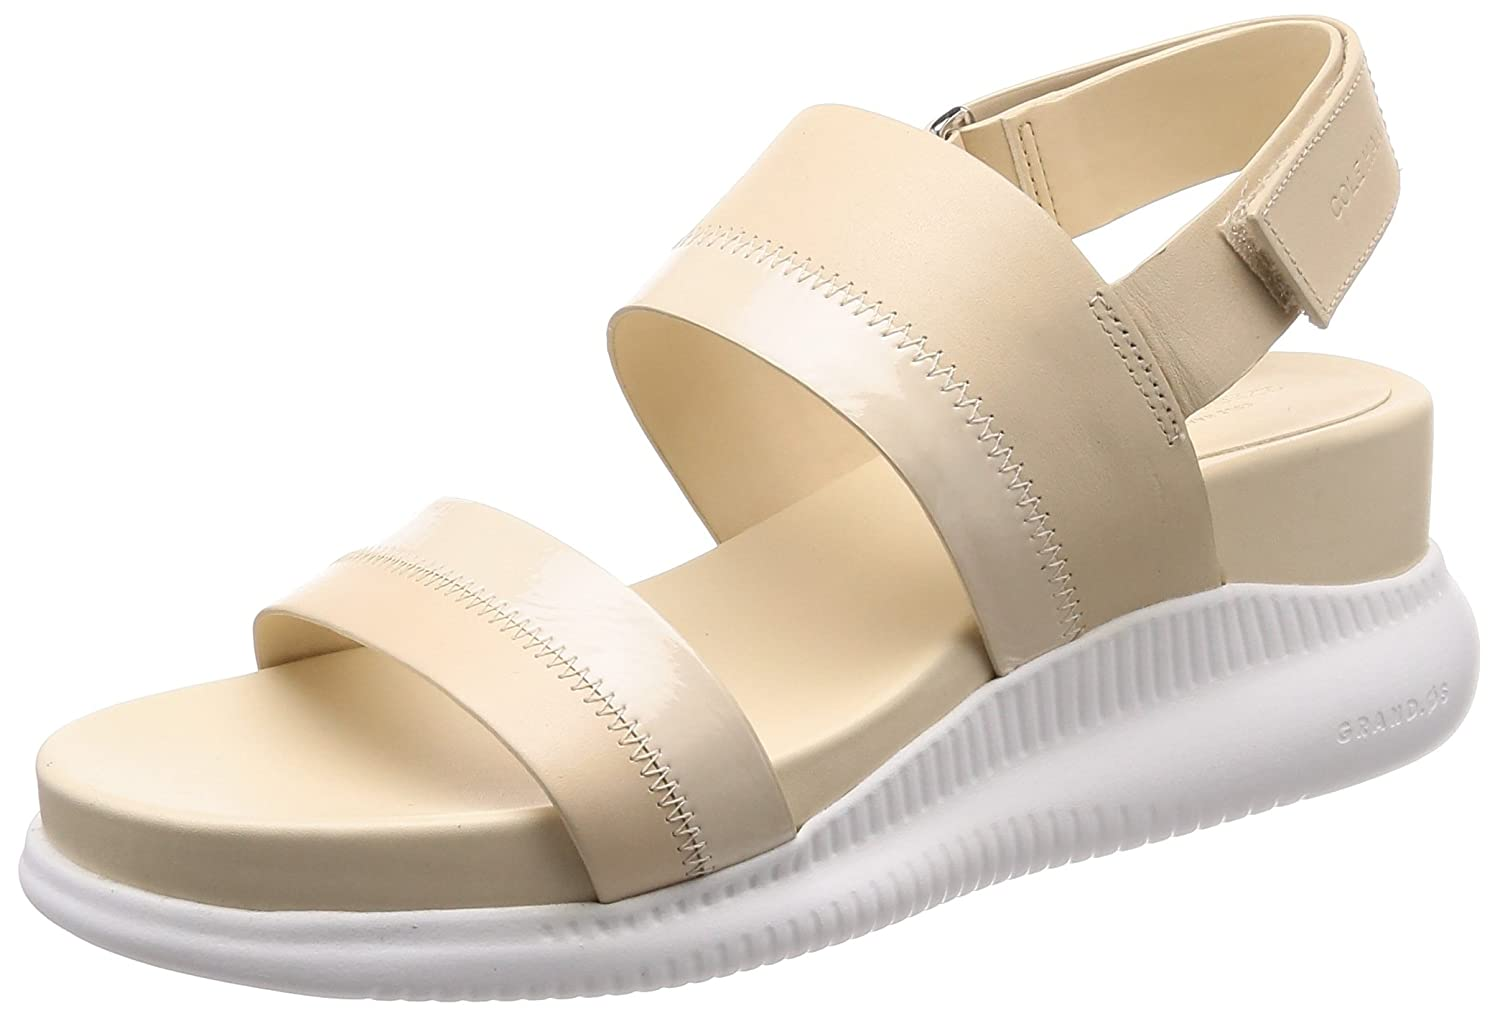 Cole Haan Women's 2.Zerogrand Slide Sport Sandal, Black Leather B079Q7XV5V 9 B(M) US|Brazilian Sand-optic White